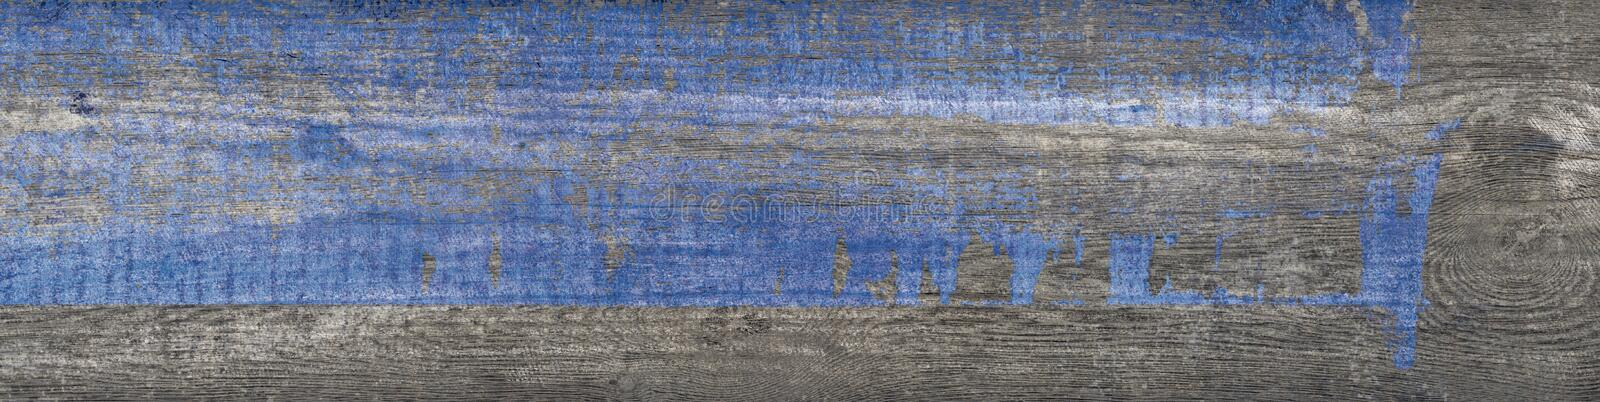 Vintage grunge wood background with peeling painted royalty free stock images